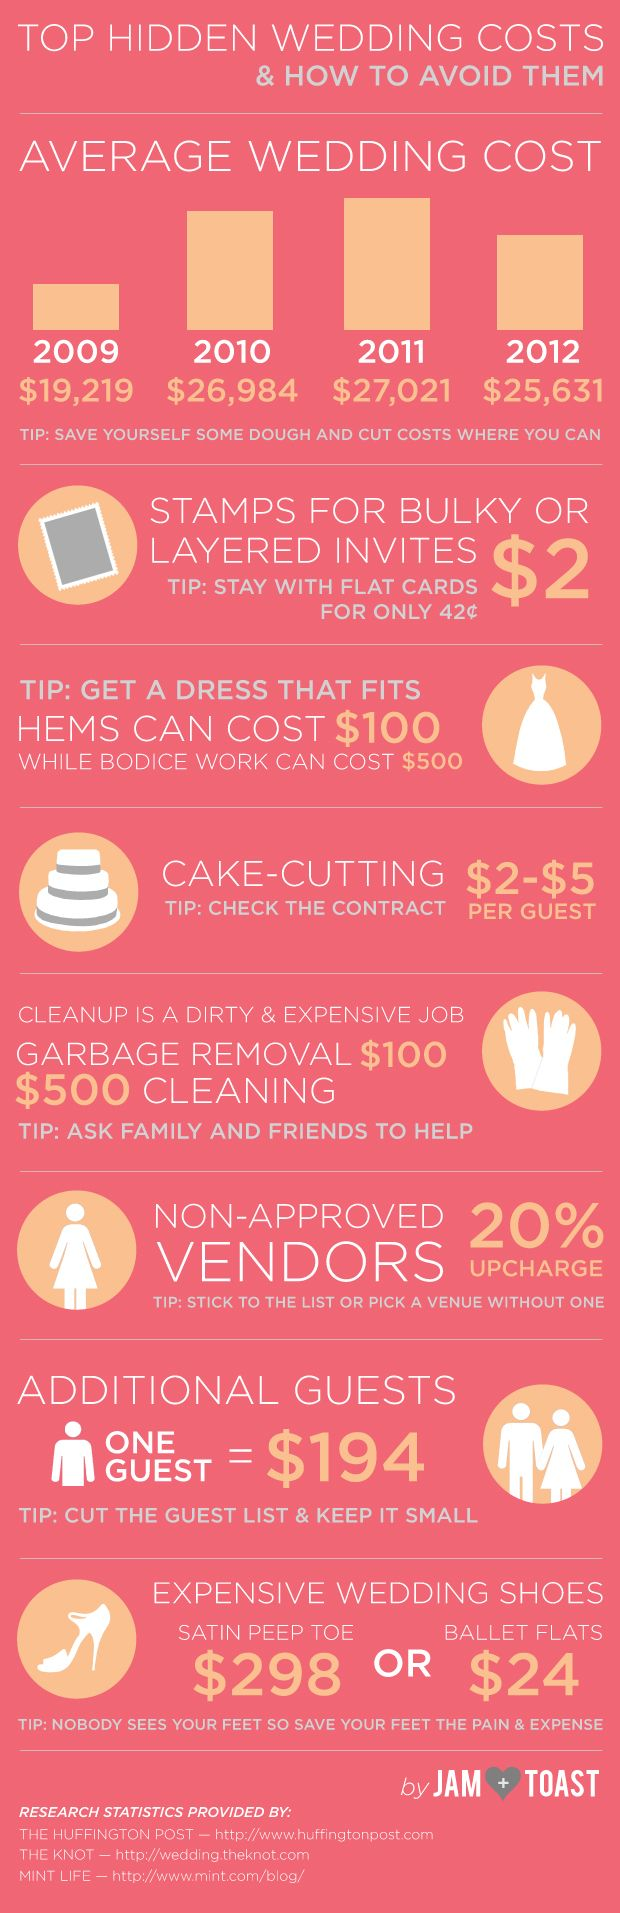 Wedding budget hints